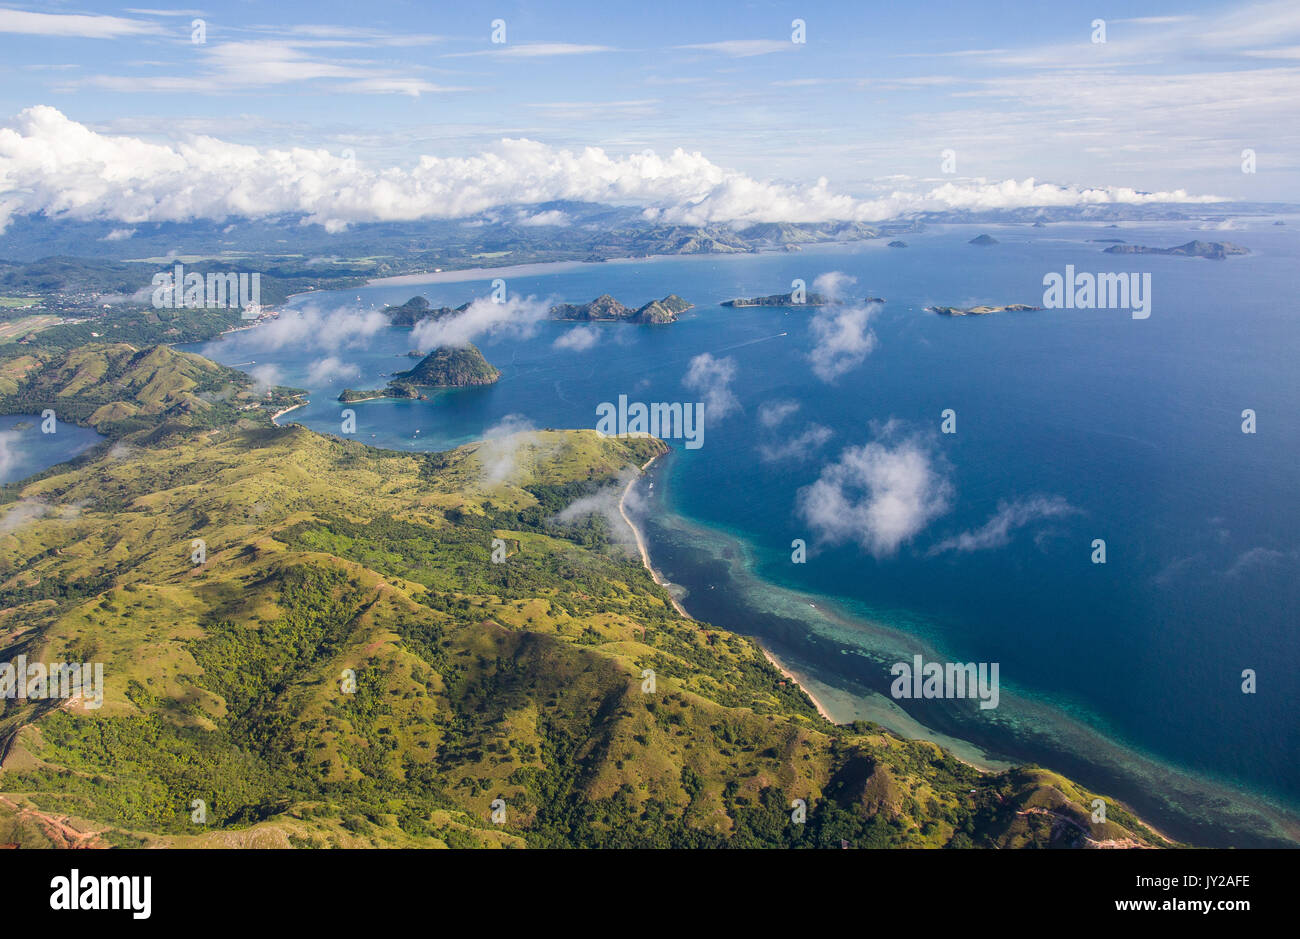 aerial photo of the west coast of flores island, near labuan bajo - Stock Image